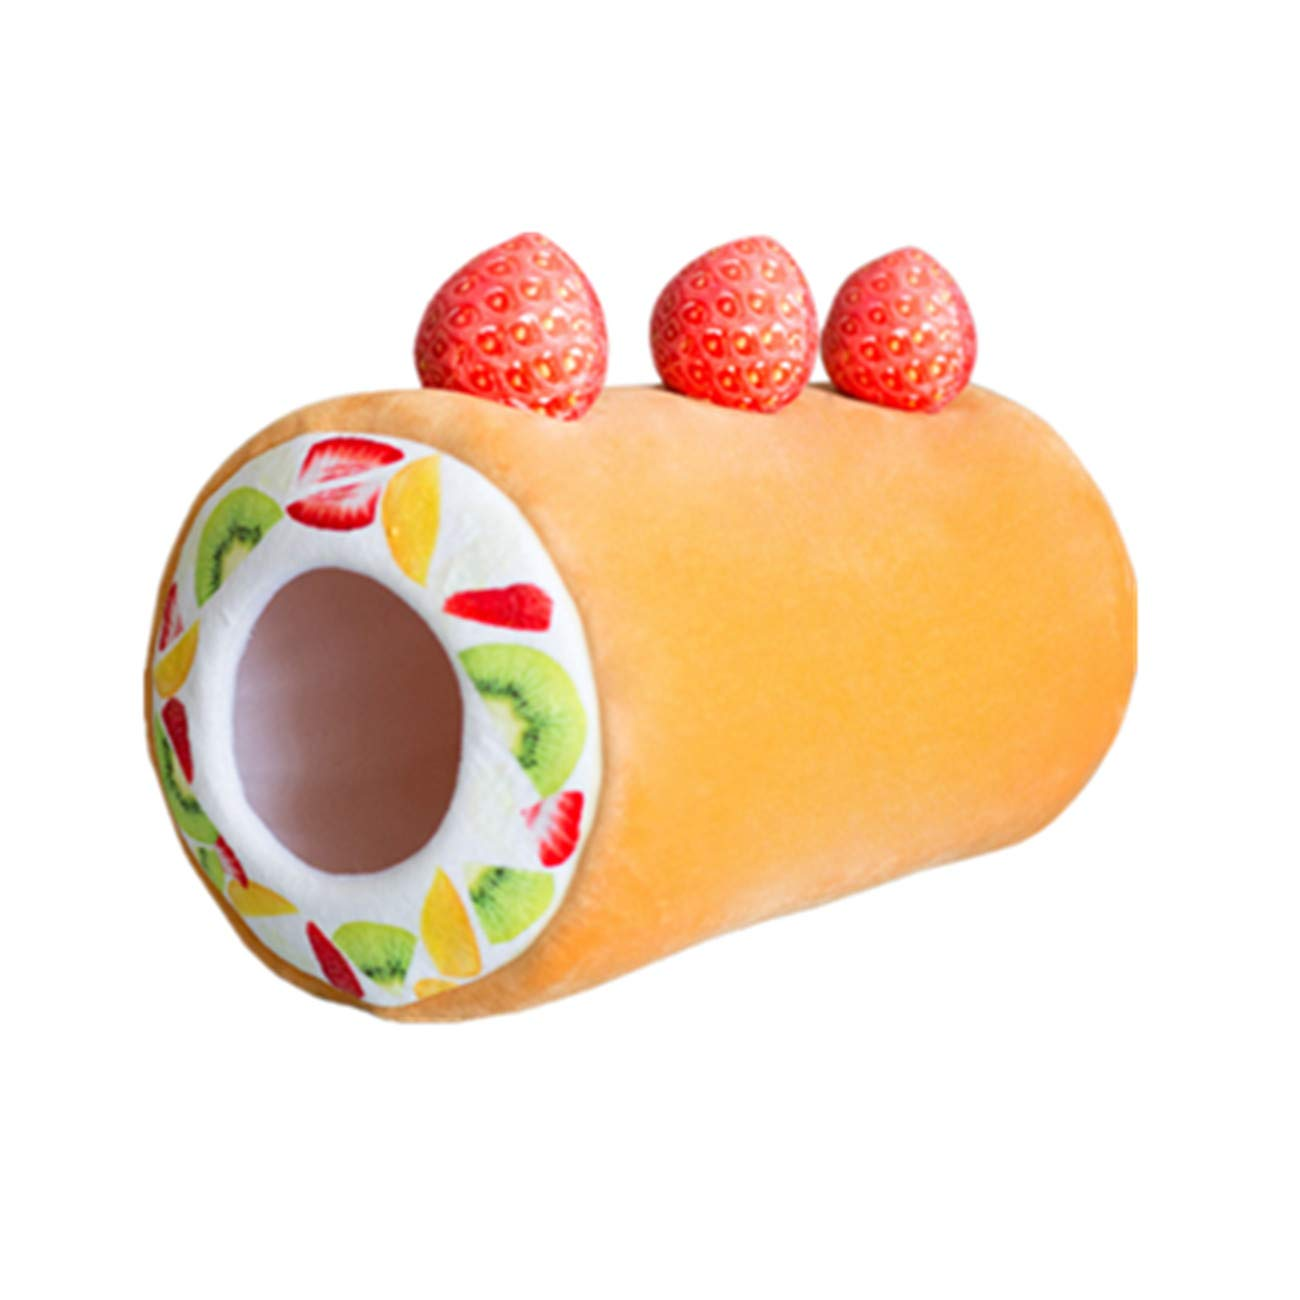 Egg Roll Pet Dog Creative Sleeping Mat Fruit Tart Egg Roll Kennel Comfortable House(Egg Roll)